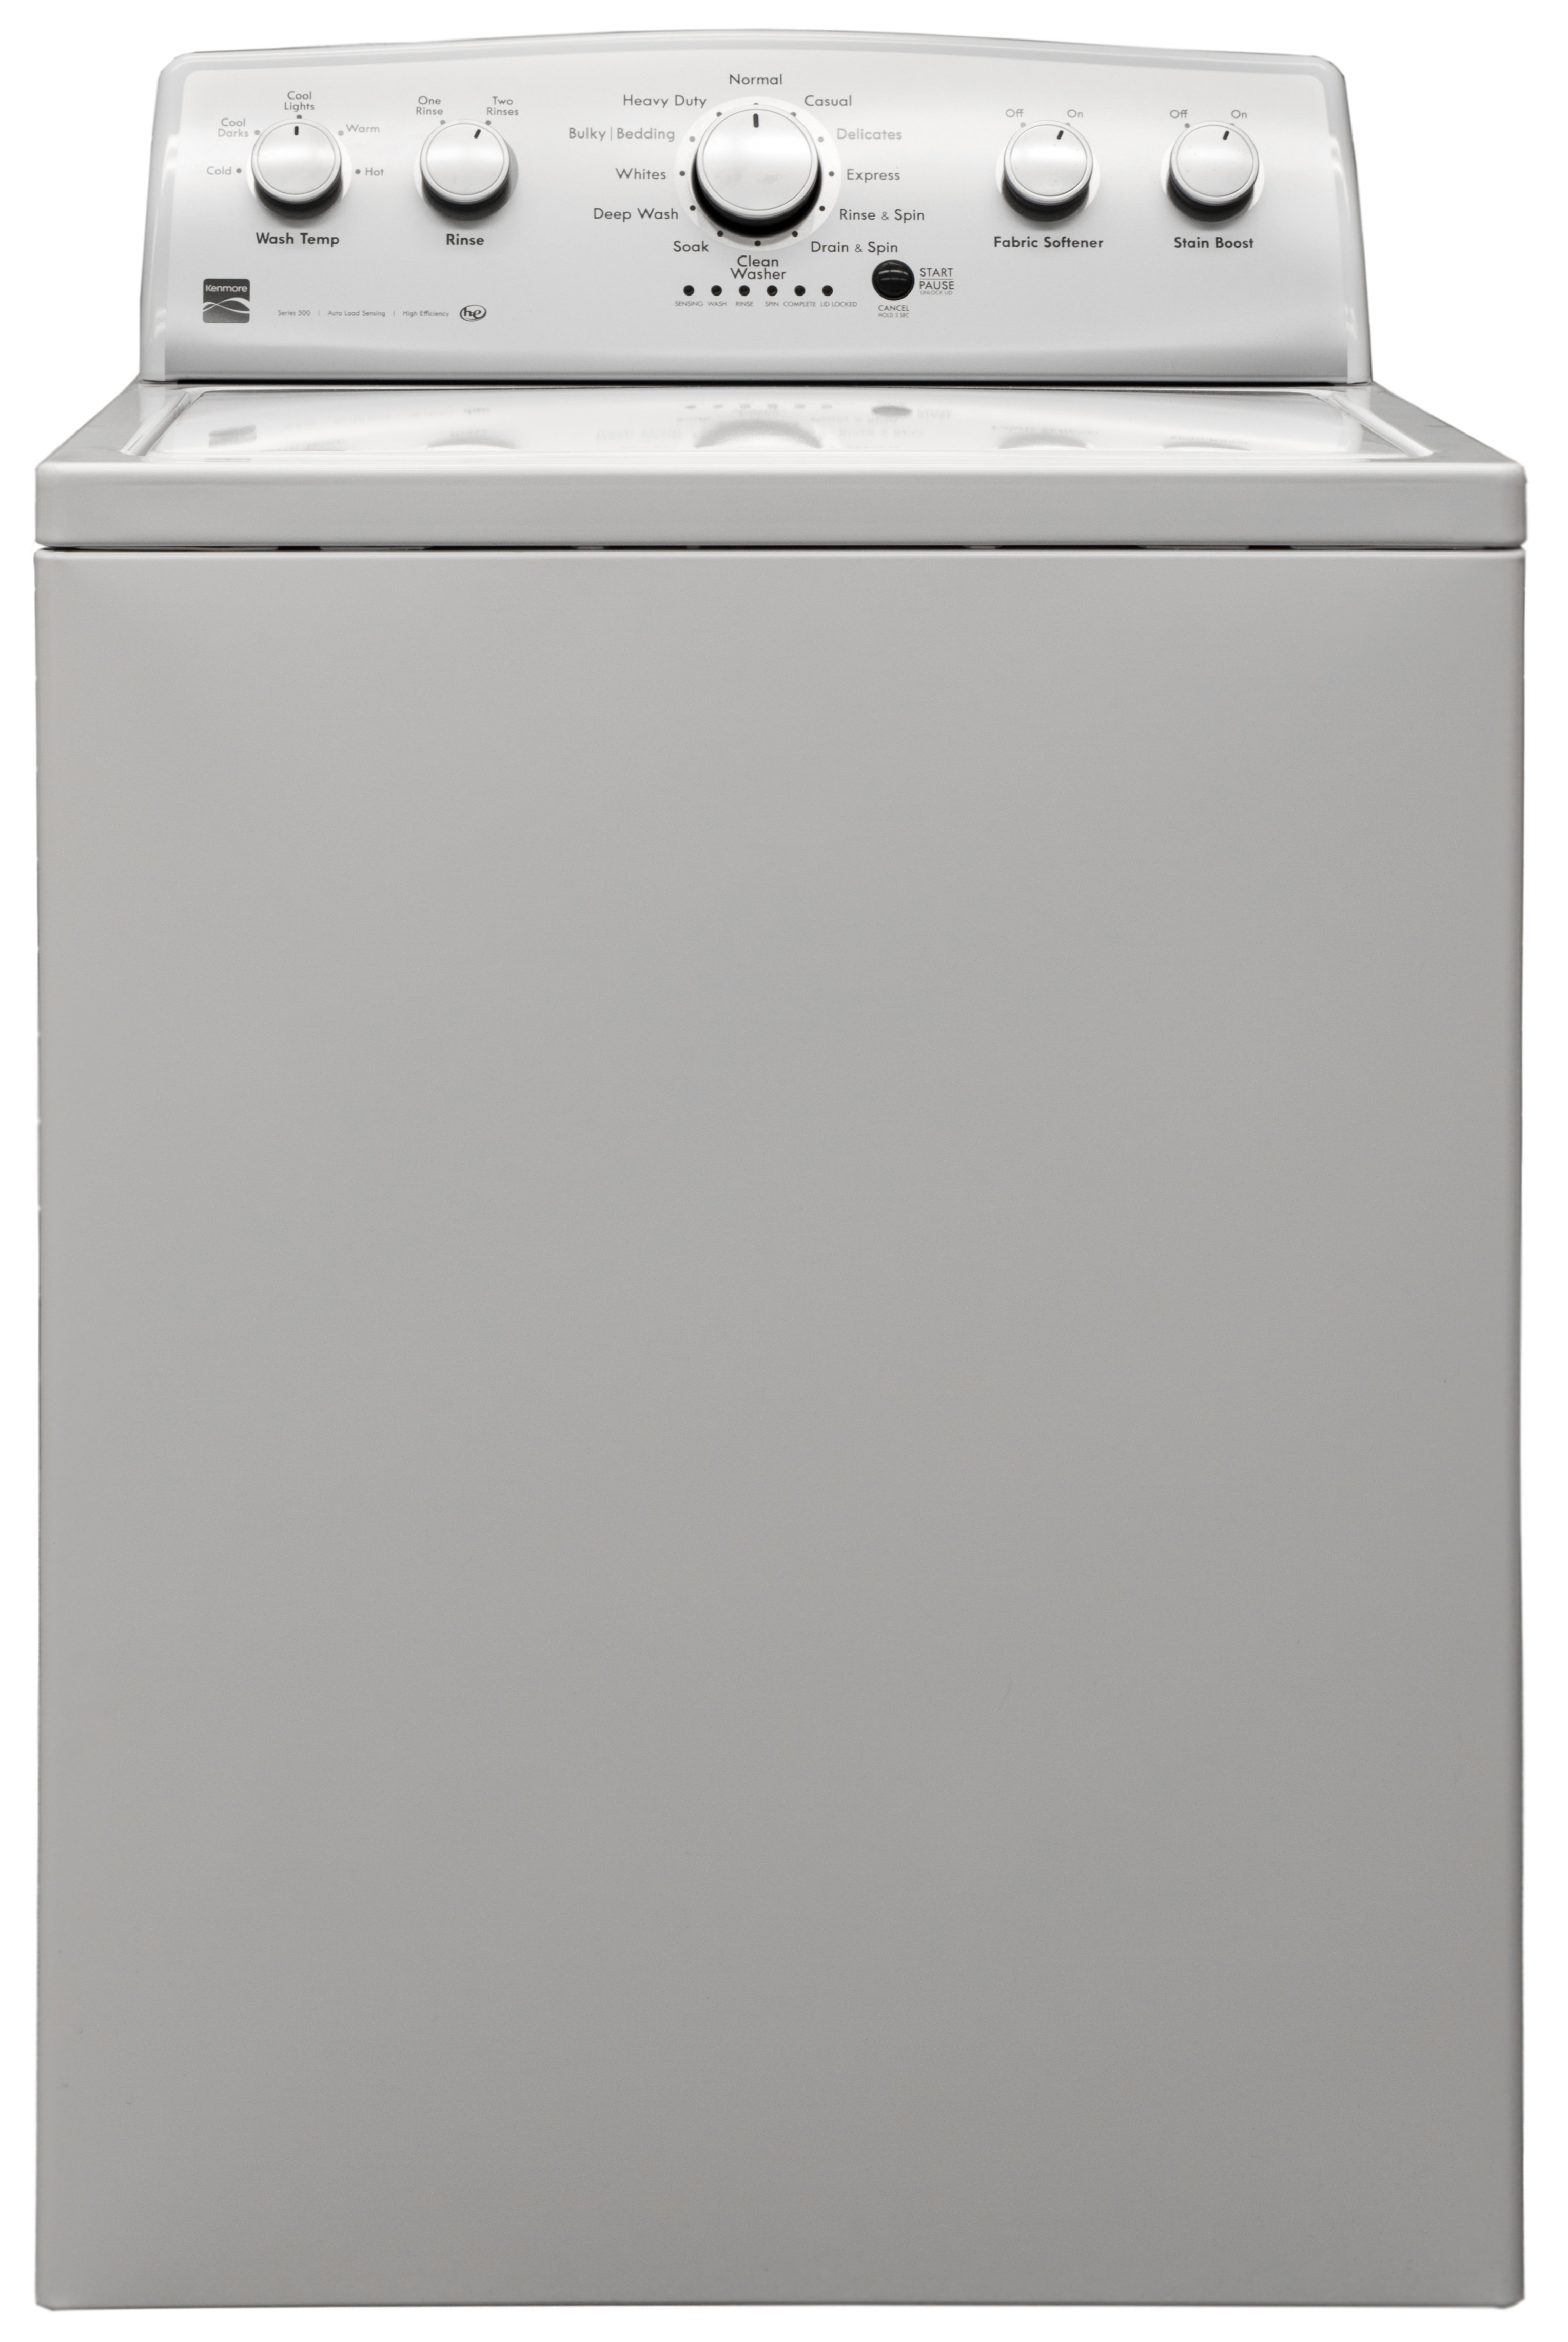 kenmore 400 washer. the kenmore 25132 is one plain washer. 400 washer